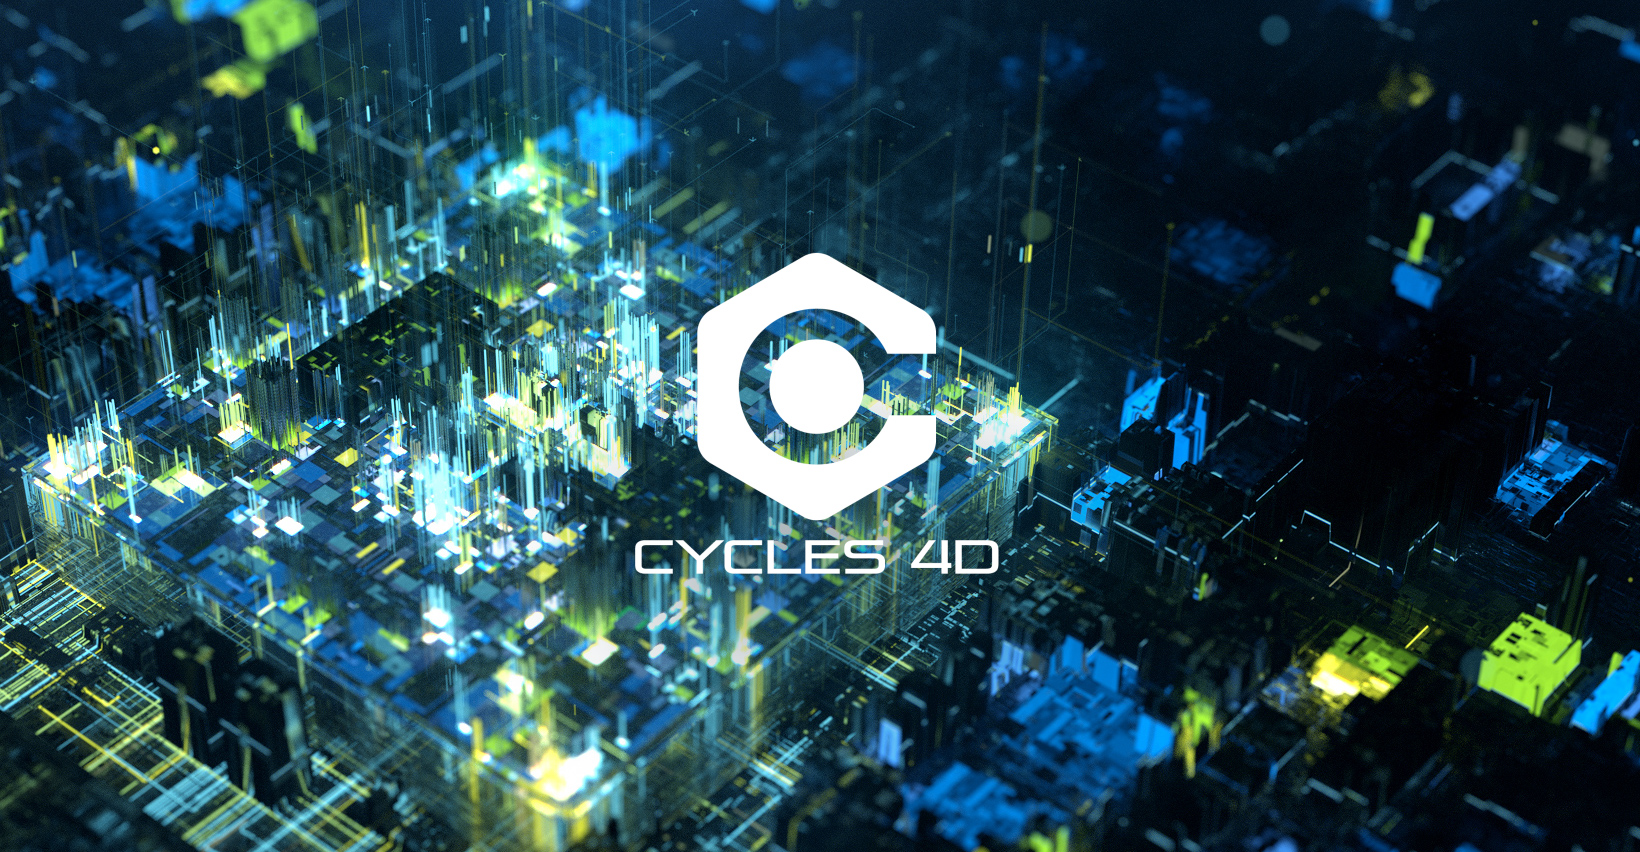 INSYDIUM LTD | Cycles 4D, 12 Month Maintenance extension FREE to ALL